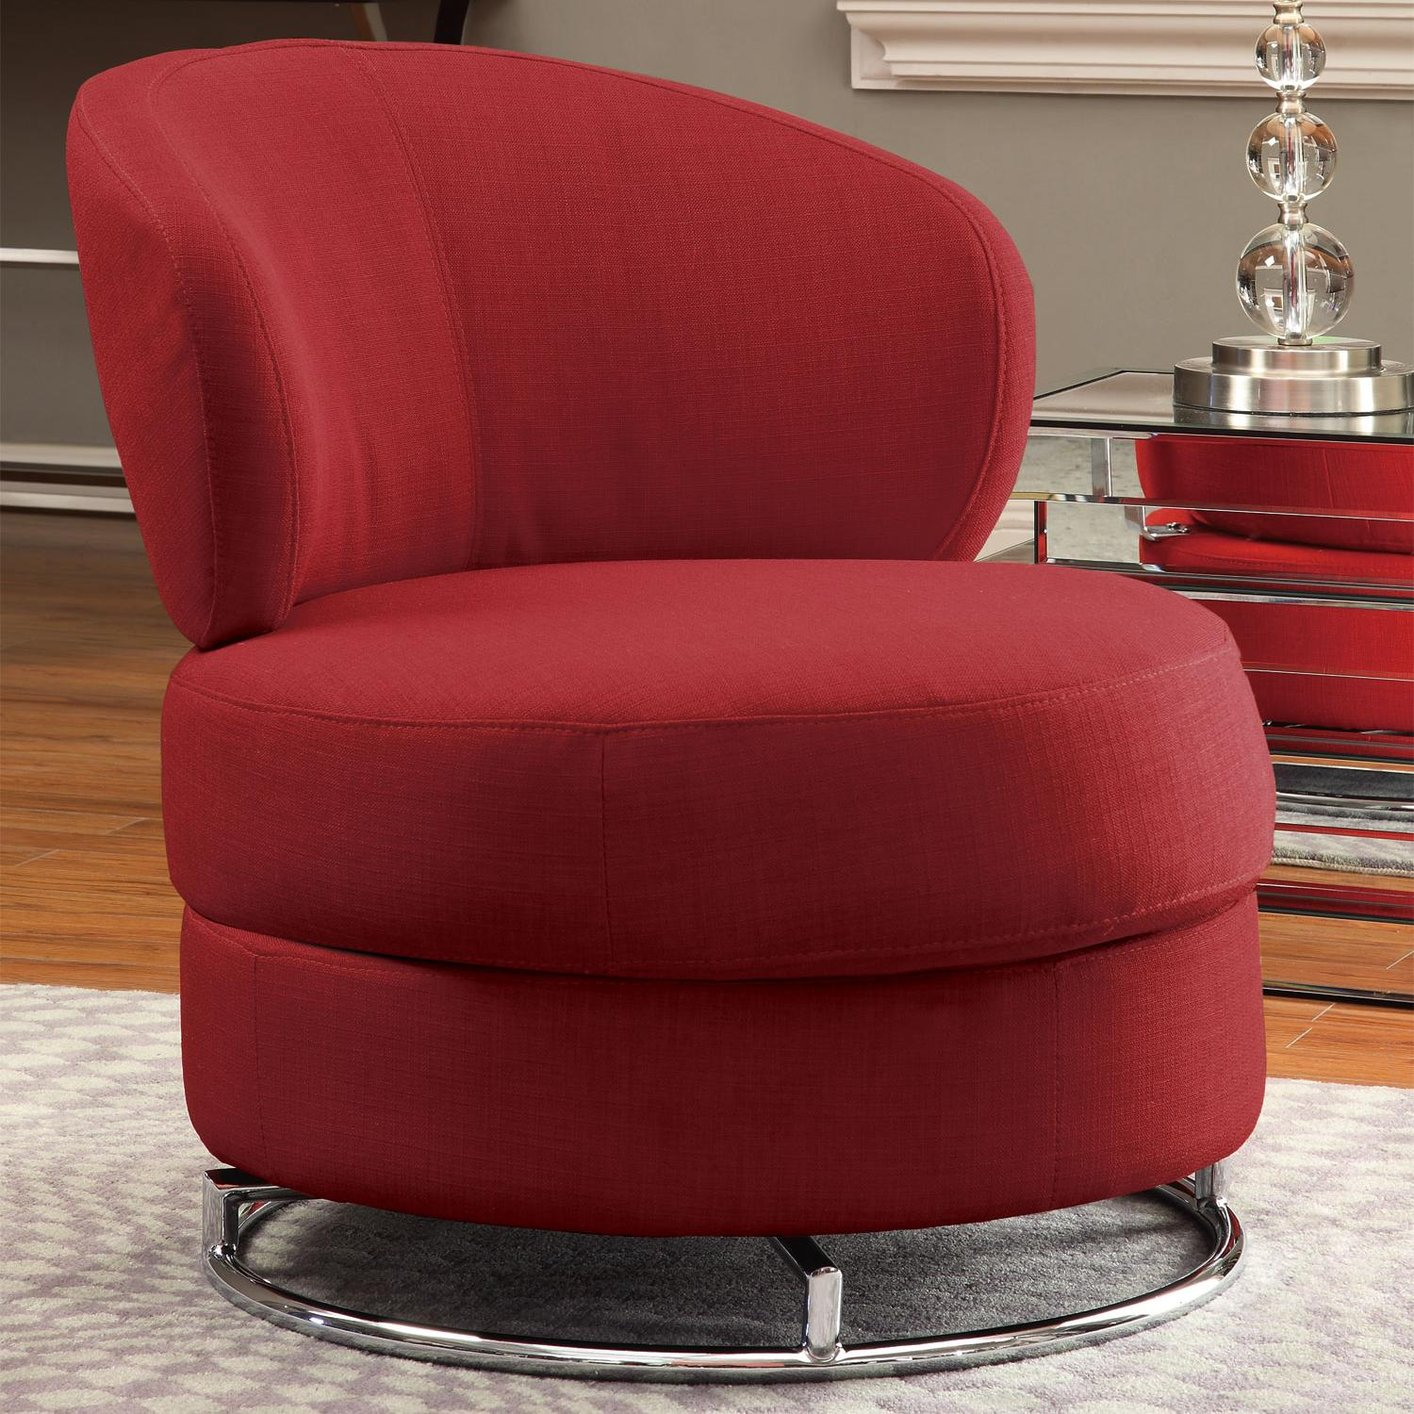 Red Swivel Chair Red Fabric Swivel Chair Steal A Sofa Furniture Outlet